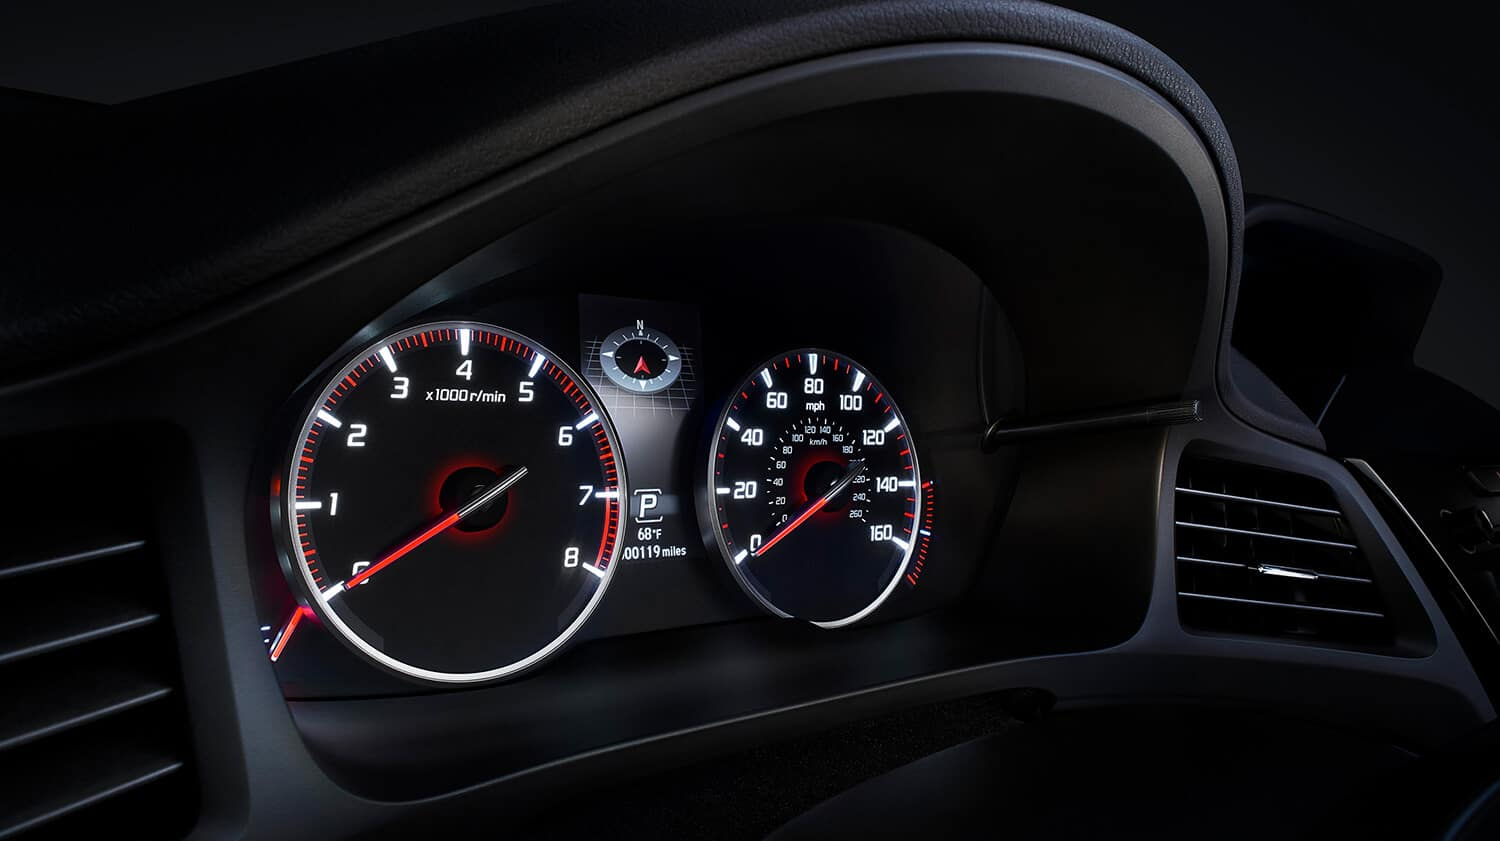 2019 Acura ILX Interior Instrument Gauges